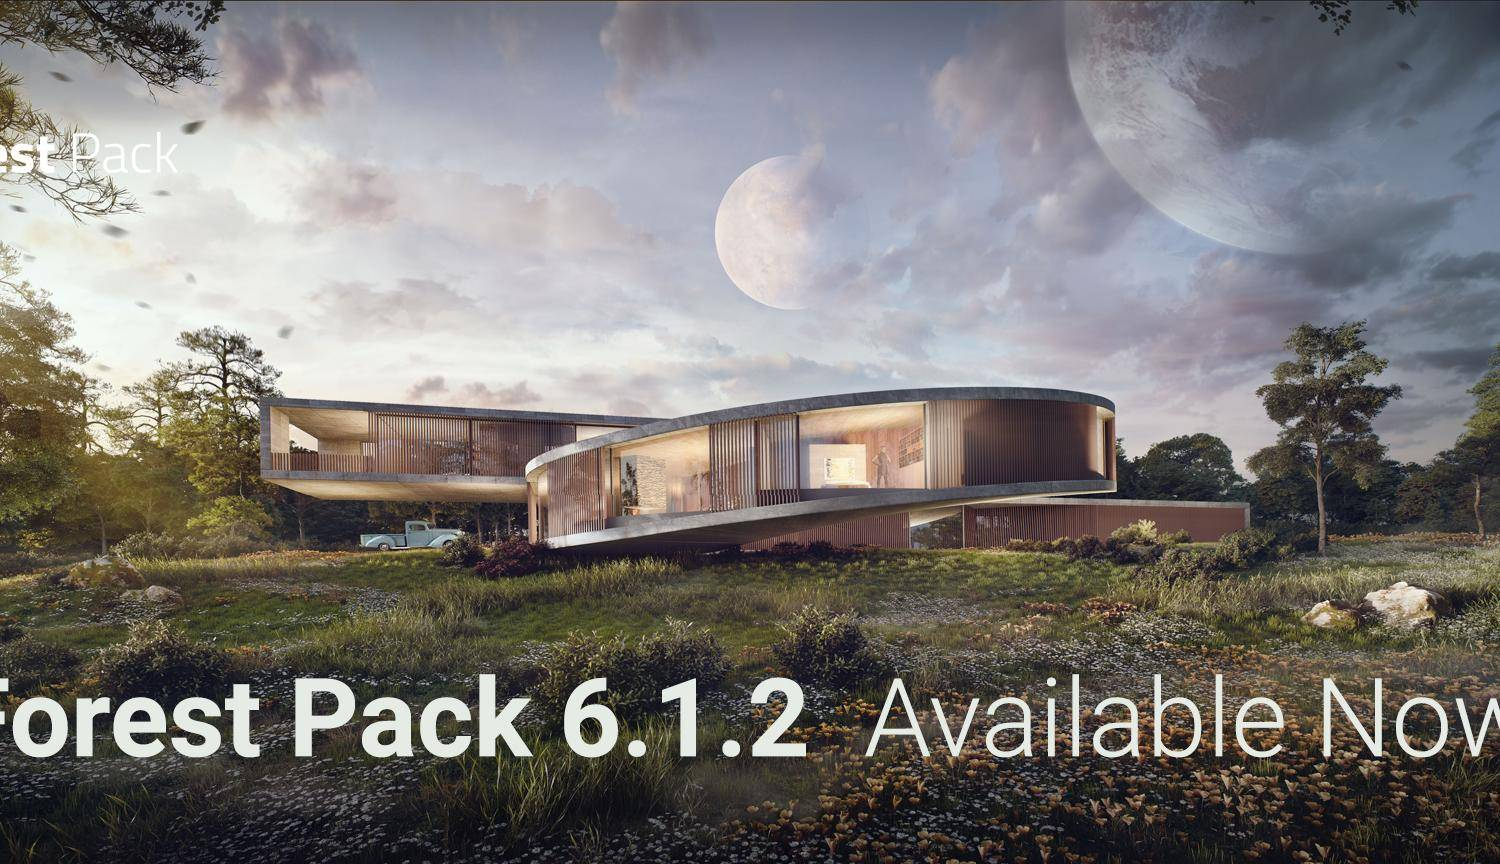 Forest Pack 6.1.2 released